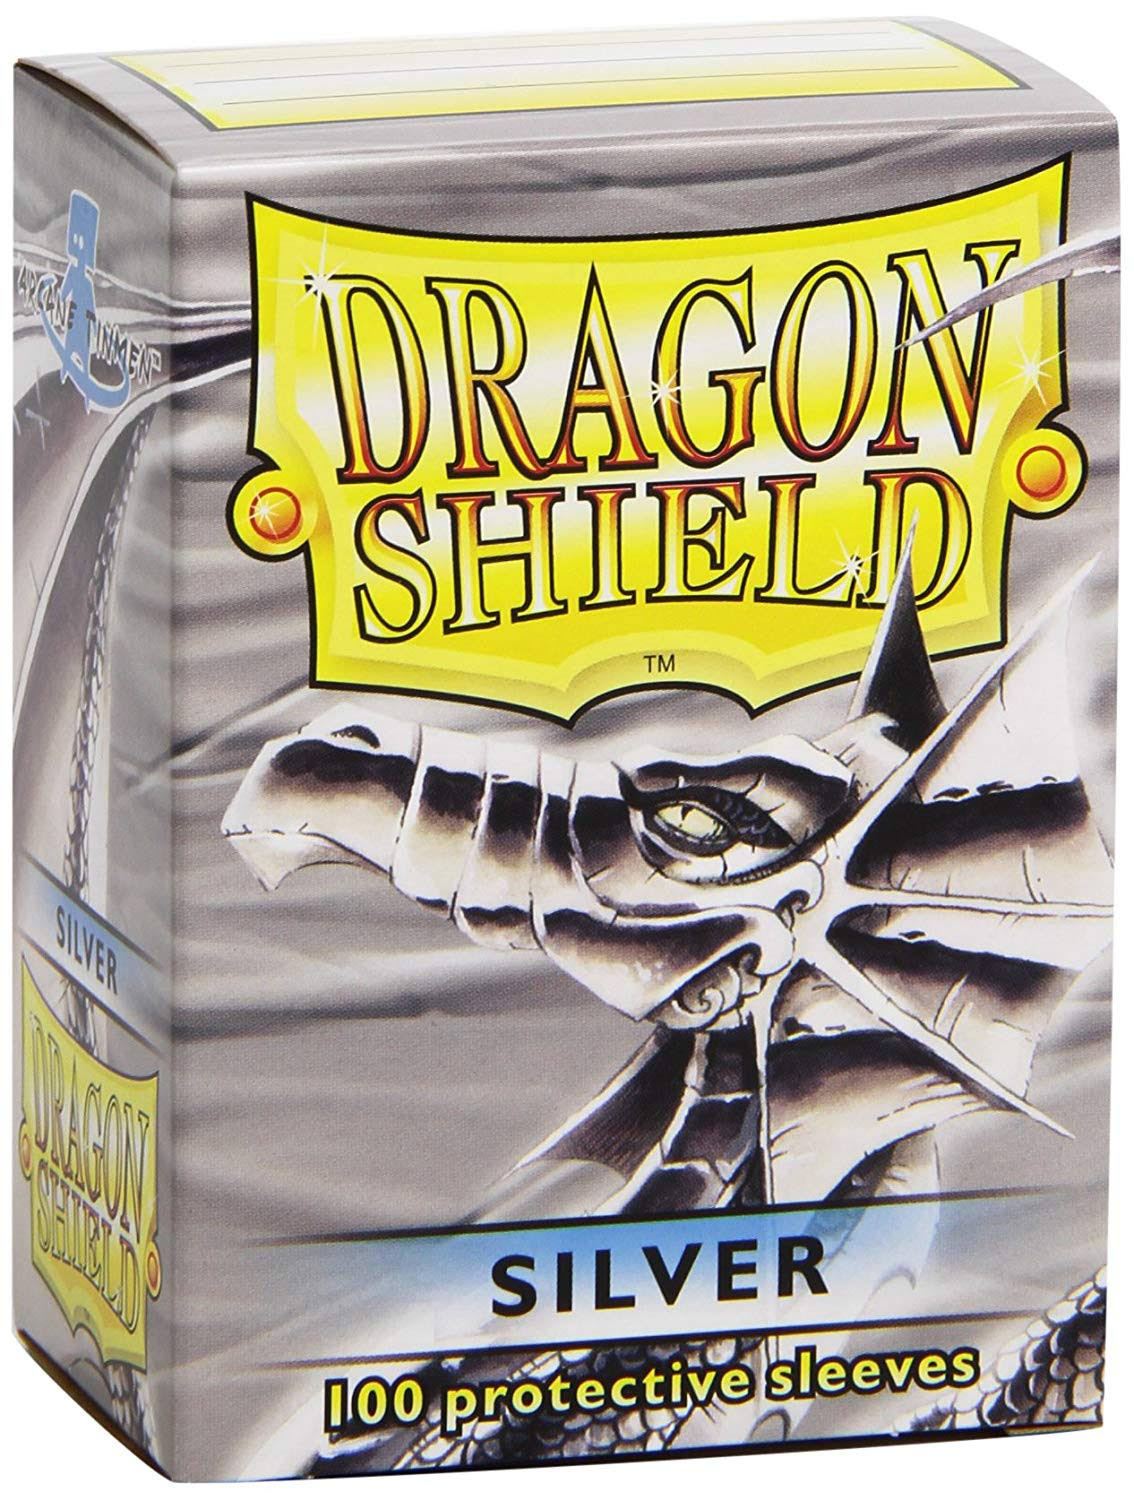 Dragon Shields Sleeves - Silver, 100 Protective Sleeves